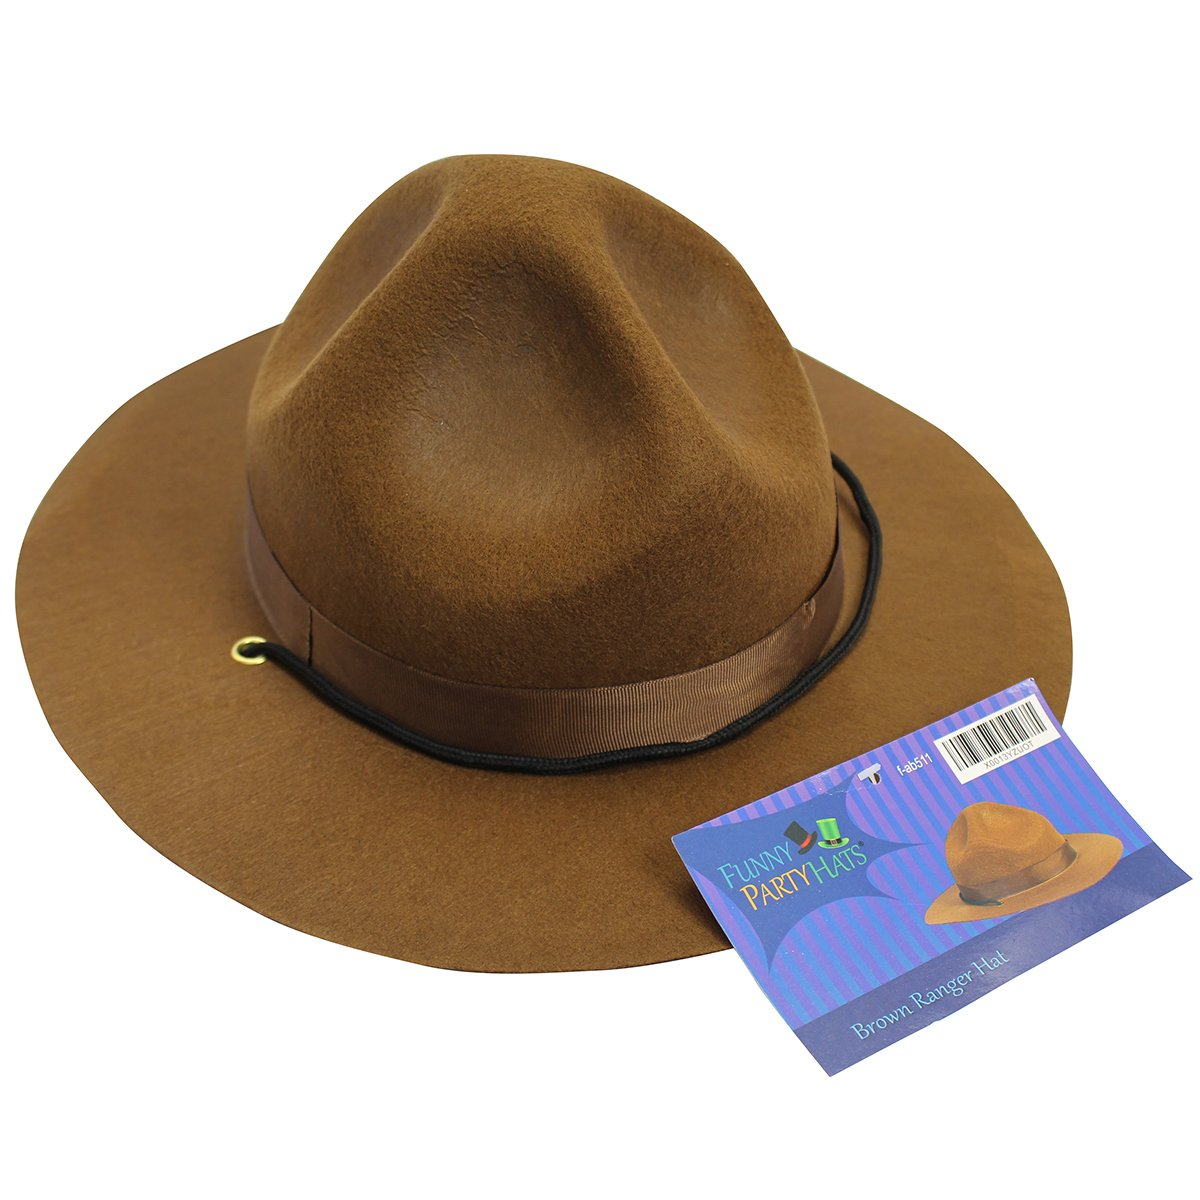 Amazon.com  Ranger hat - Brown Drill Sergeant Military Campaign Hat by  Funny Party Hats  Toys   Games 31b04087e1d